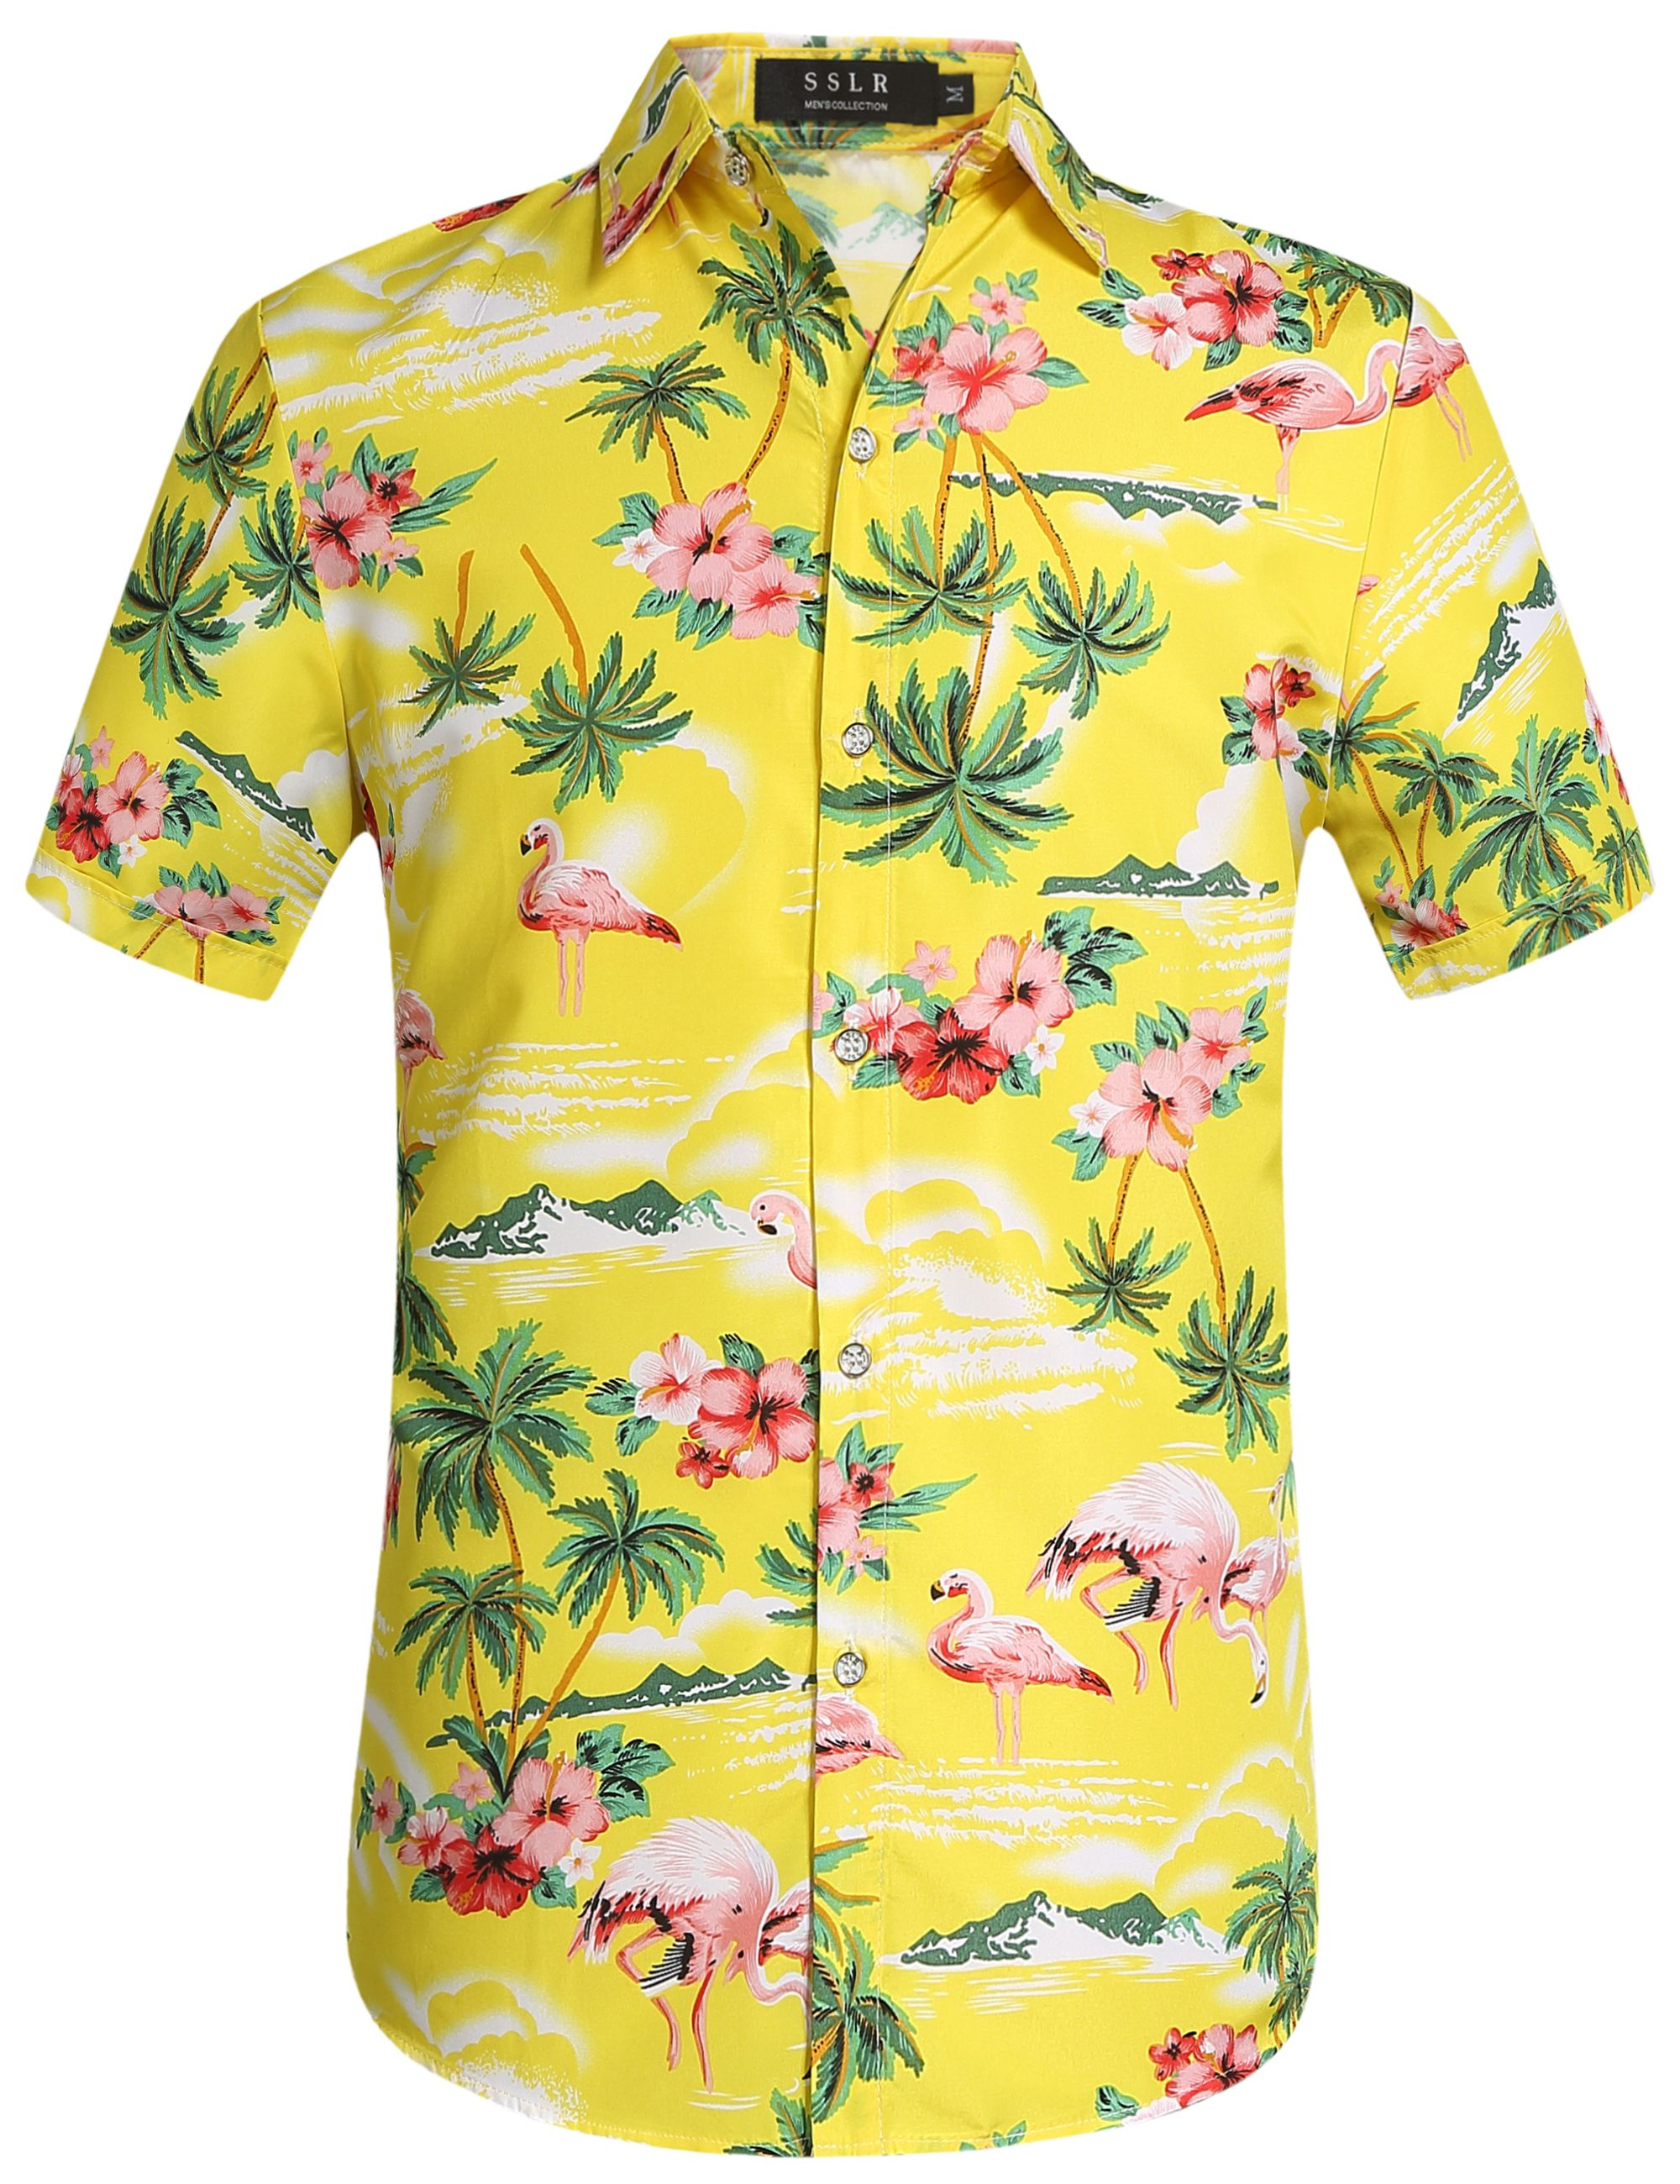 30f4c1834 23.90 Men's yellow floral flamingo shirt Flamingo Shirt, Retro Clothing, Mens  Hawaiian Shirts